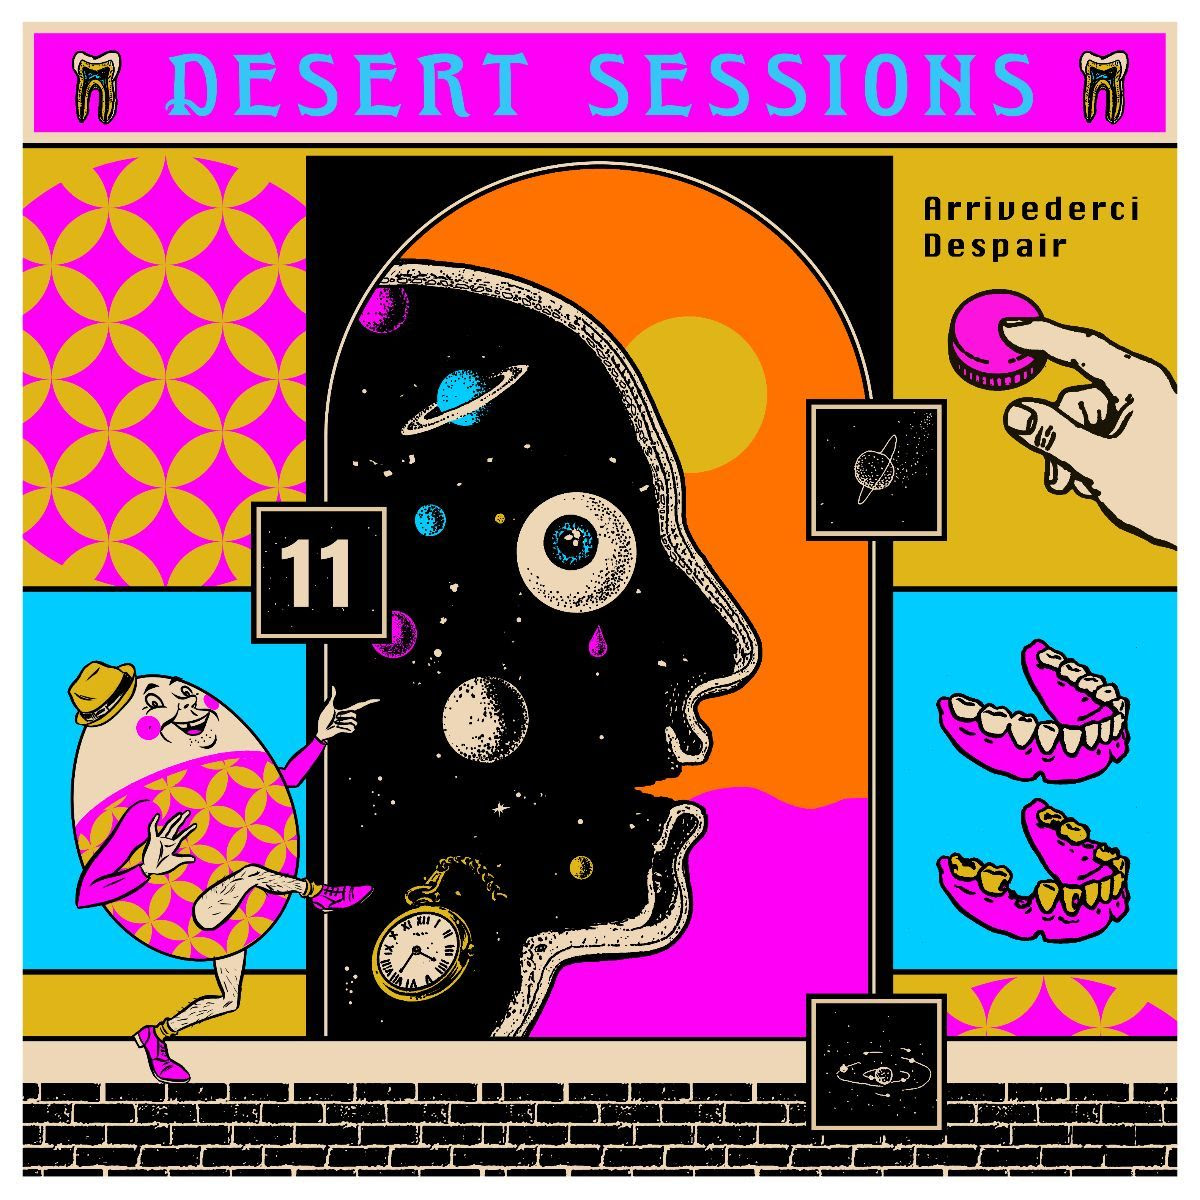 Desert Sessions Vol 11